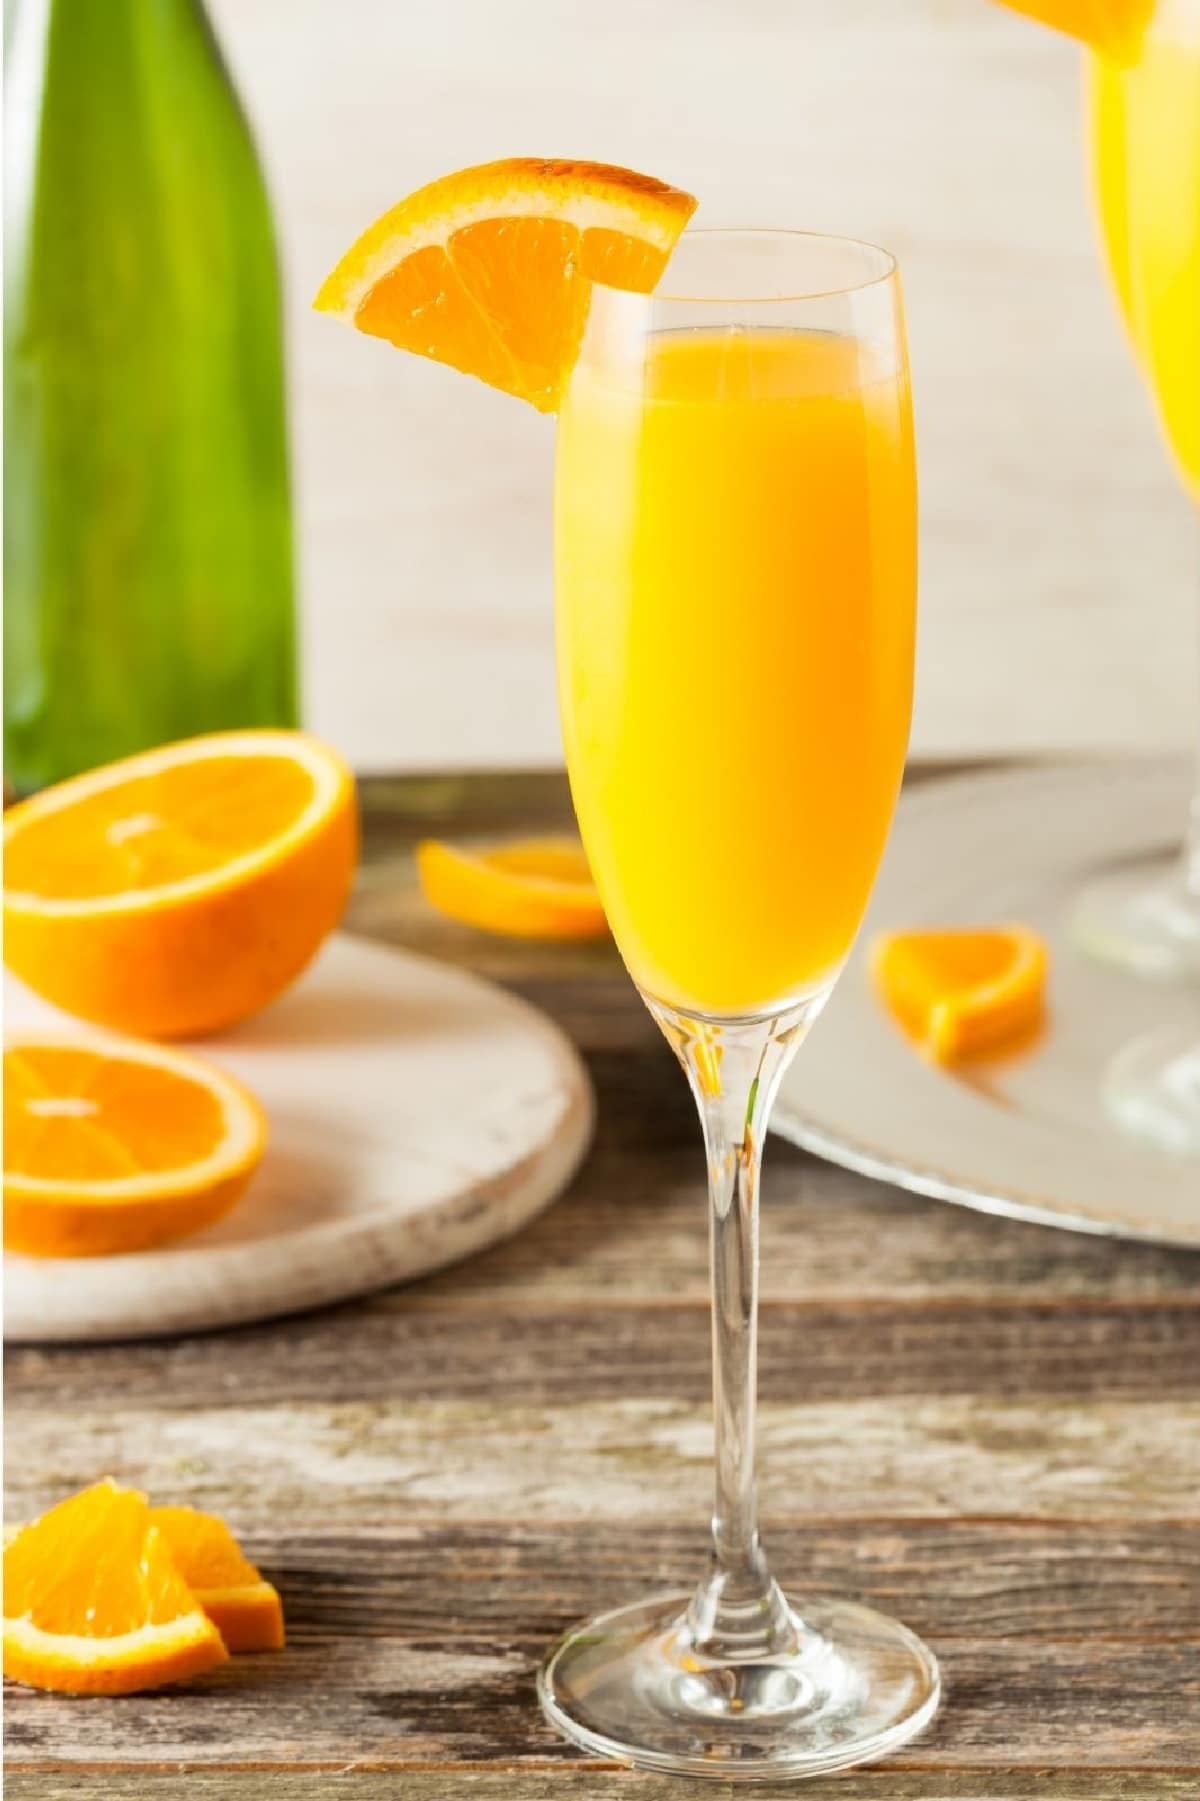 champagne flute filled with a mimosa cocktail and orange wedge garnish